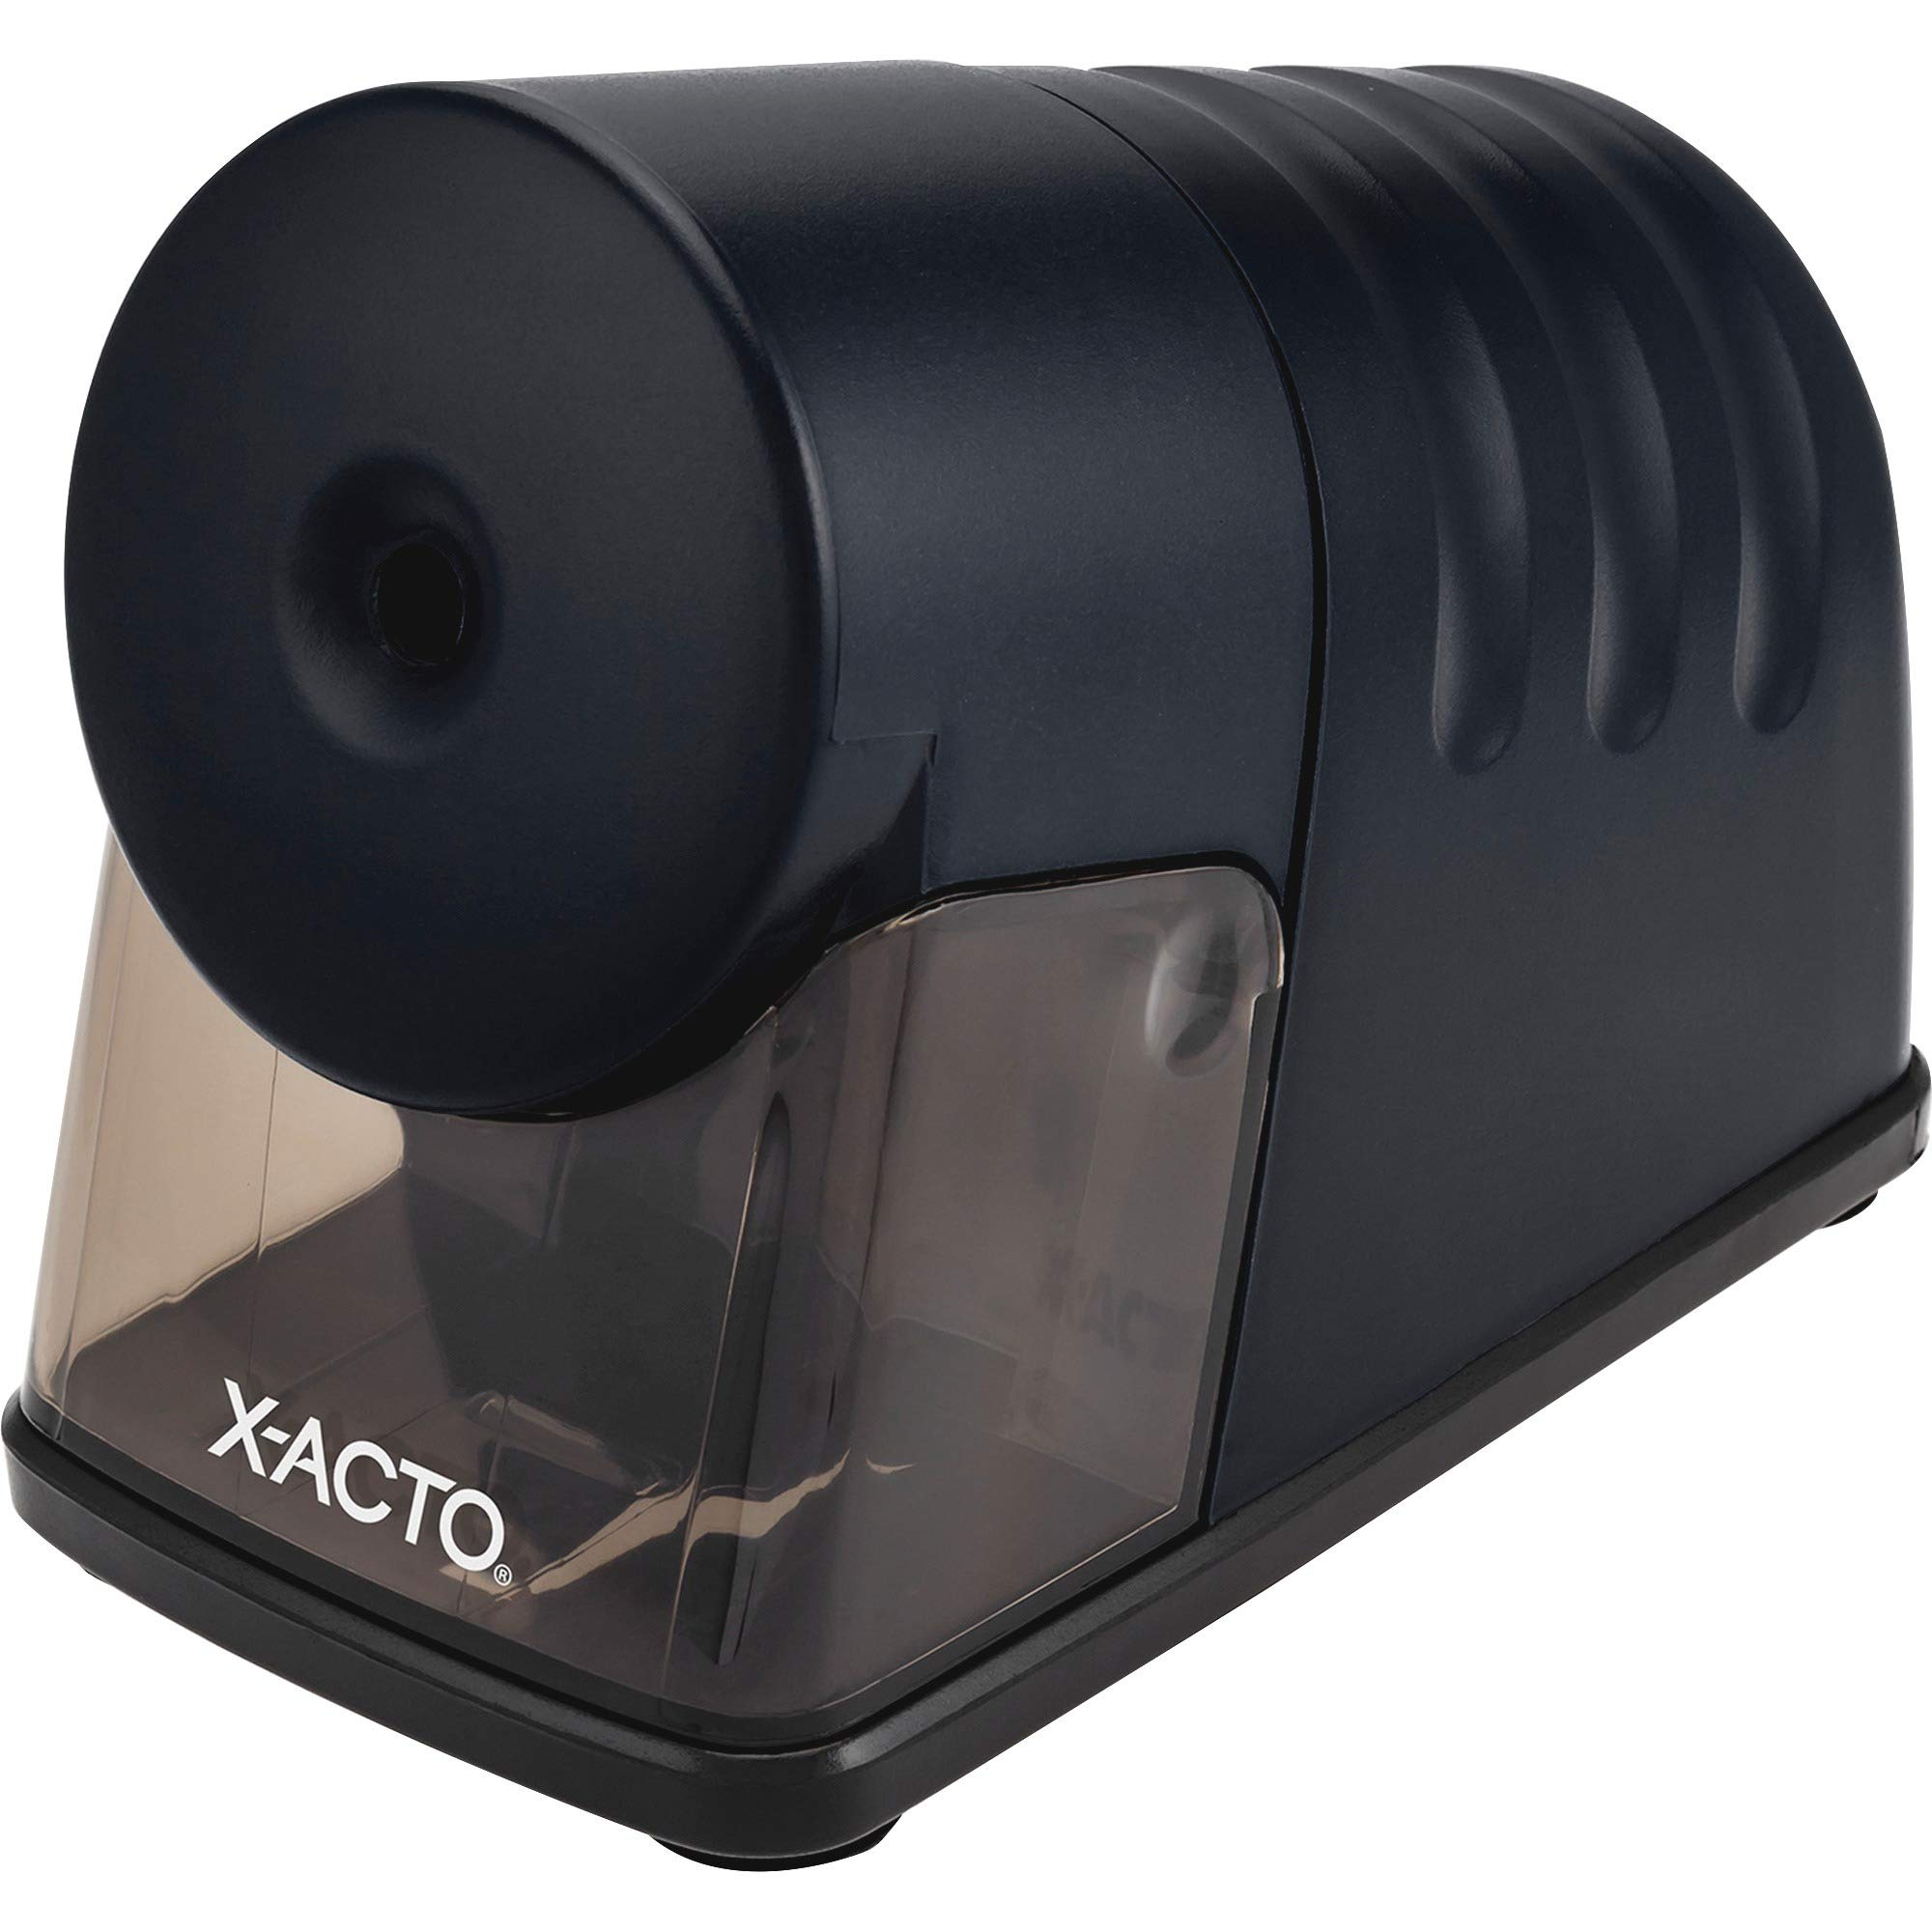 X-Acto Powerhouse Electric Sharpener, Black (1799) (2 Pack) by X-Acto